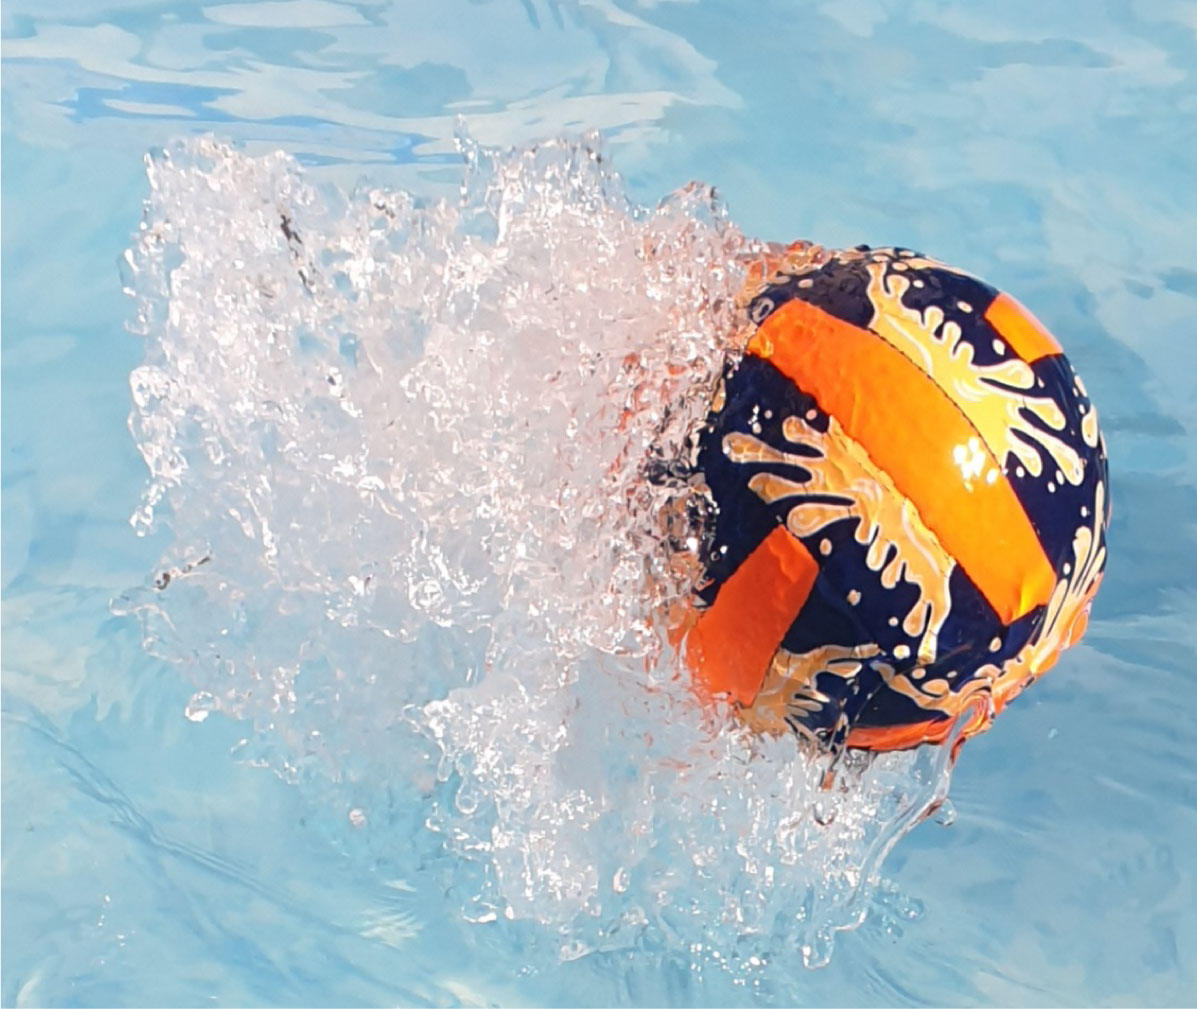 Wasserball Handball Mix